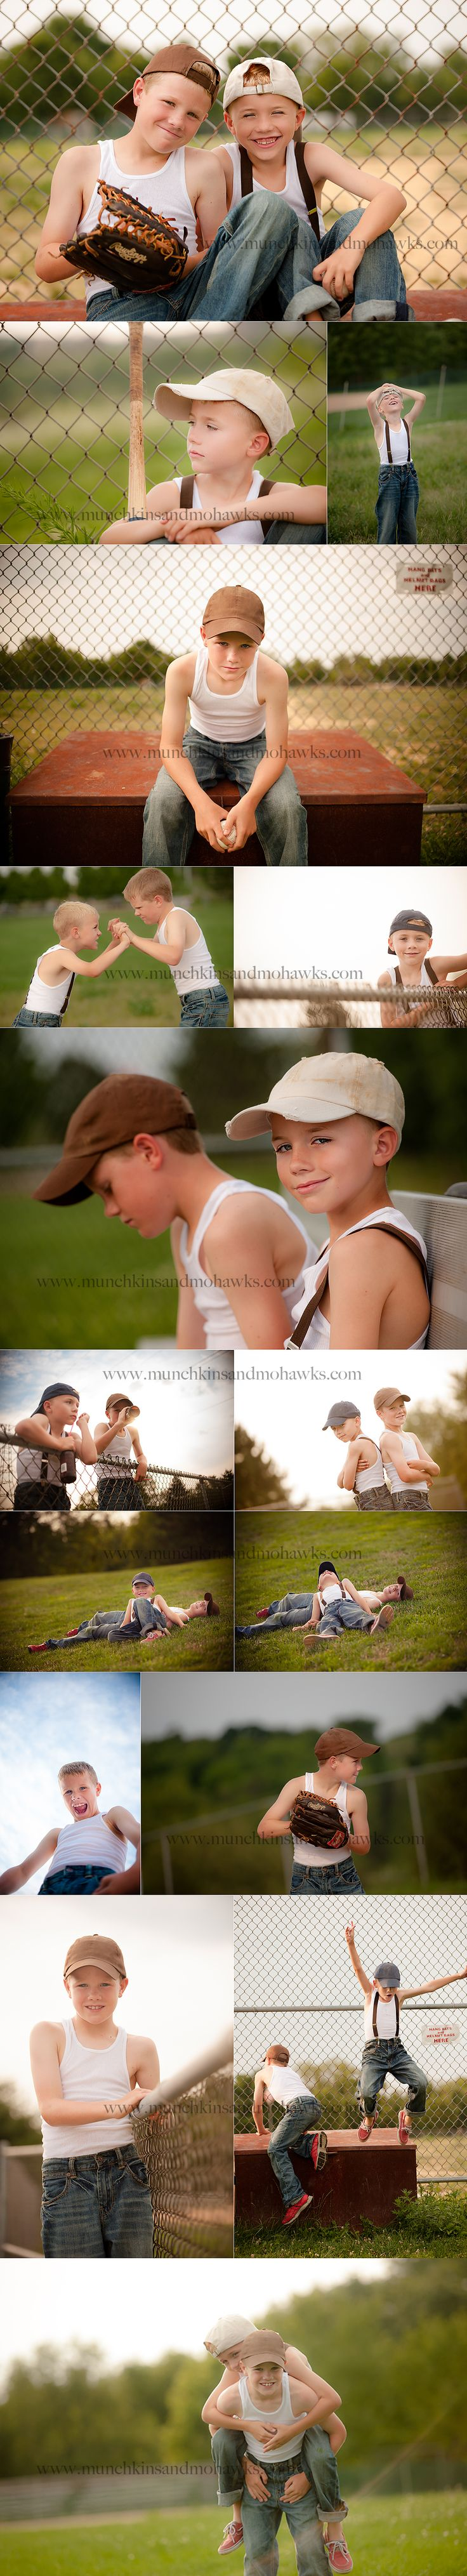 Posing ideas for brothers! So going to do this!! Cute!